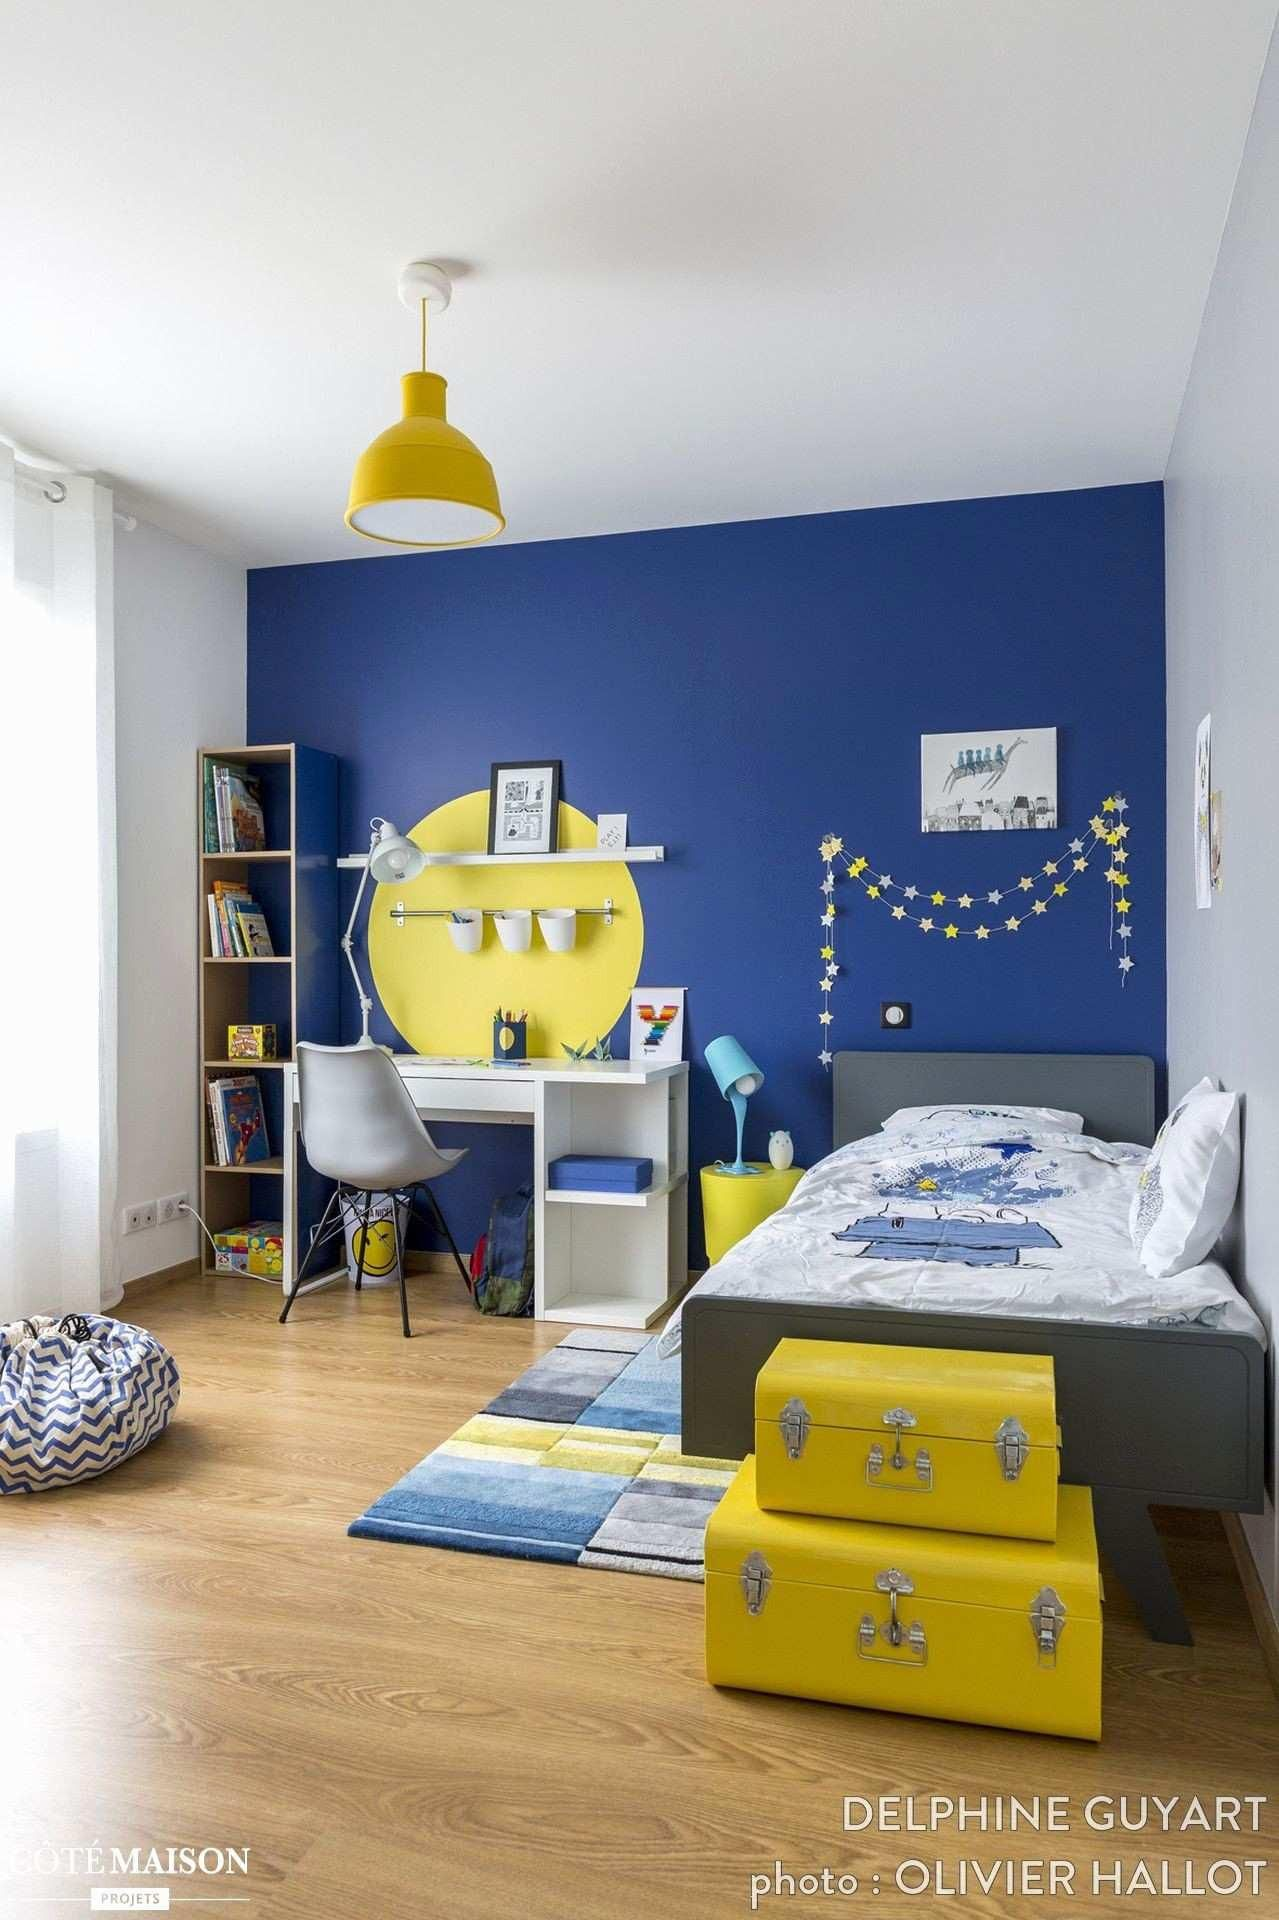 17 Deco Chambre Fille 17 Ans  Baby room decor, Baby room design